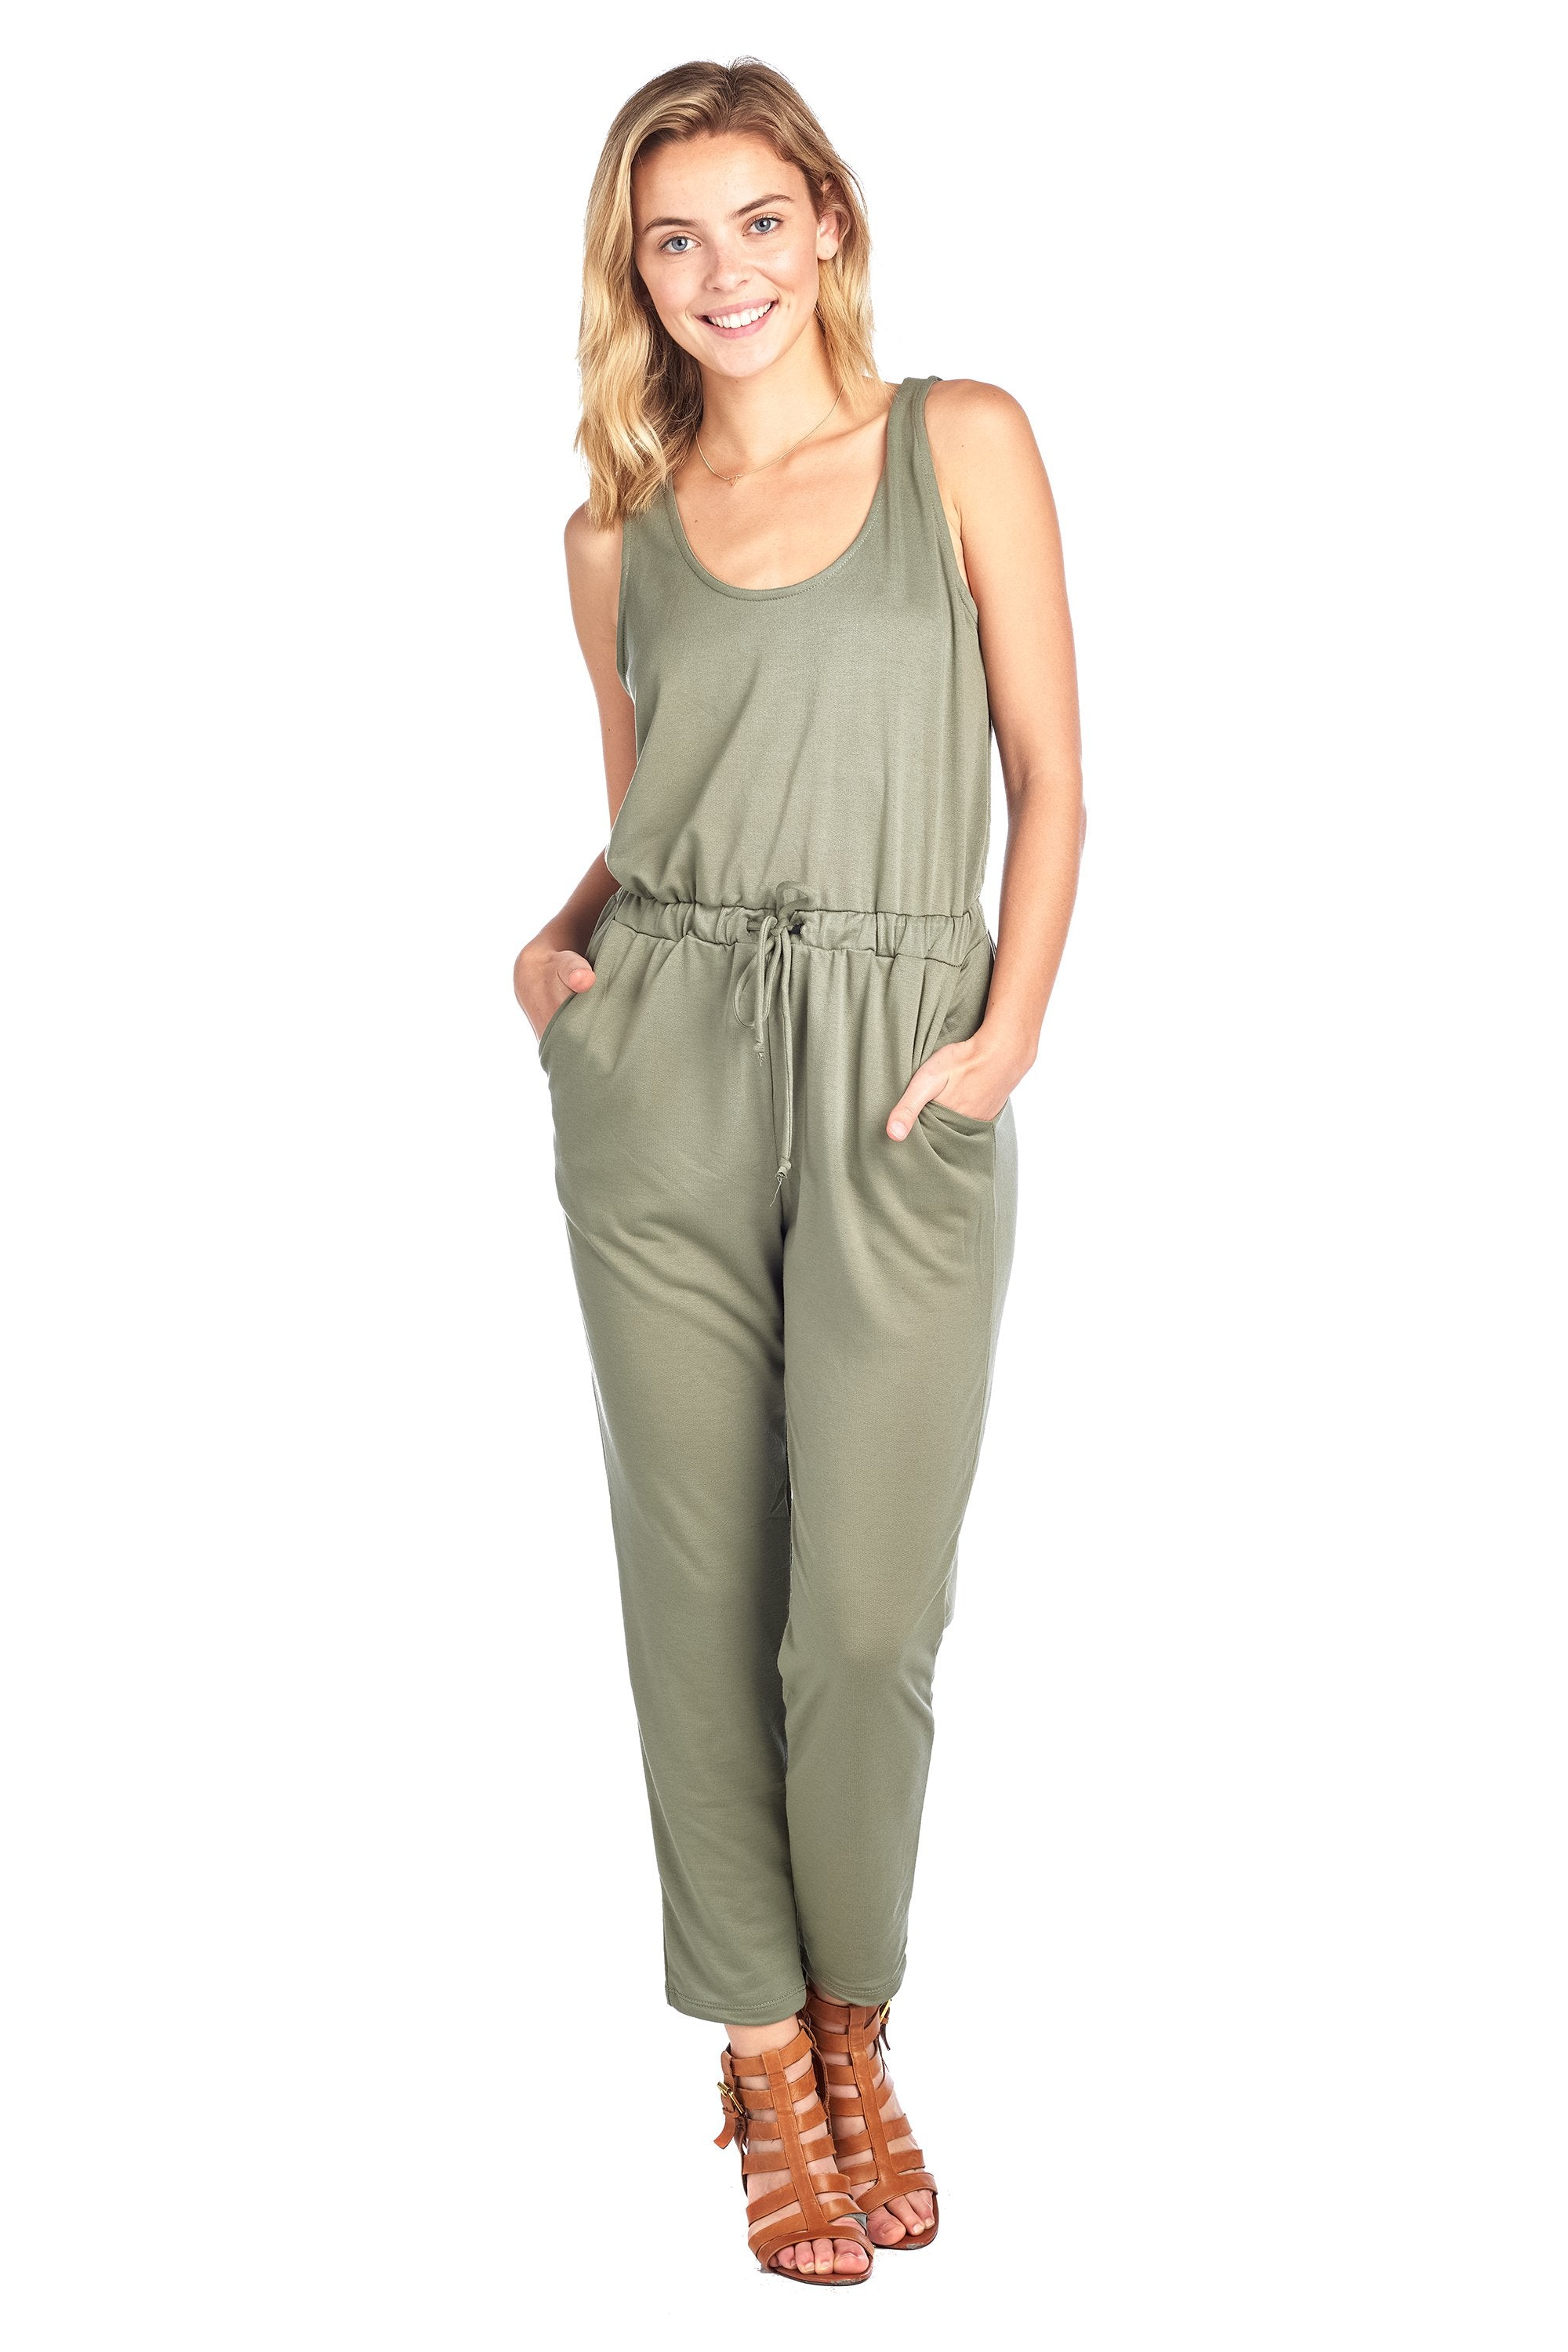 Casual Sleeveless Scoop Neck Drawstring Waist Long Pants Jumpsuit